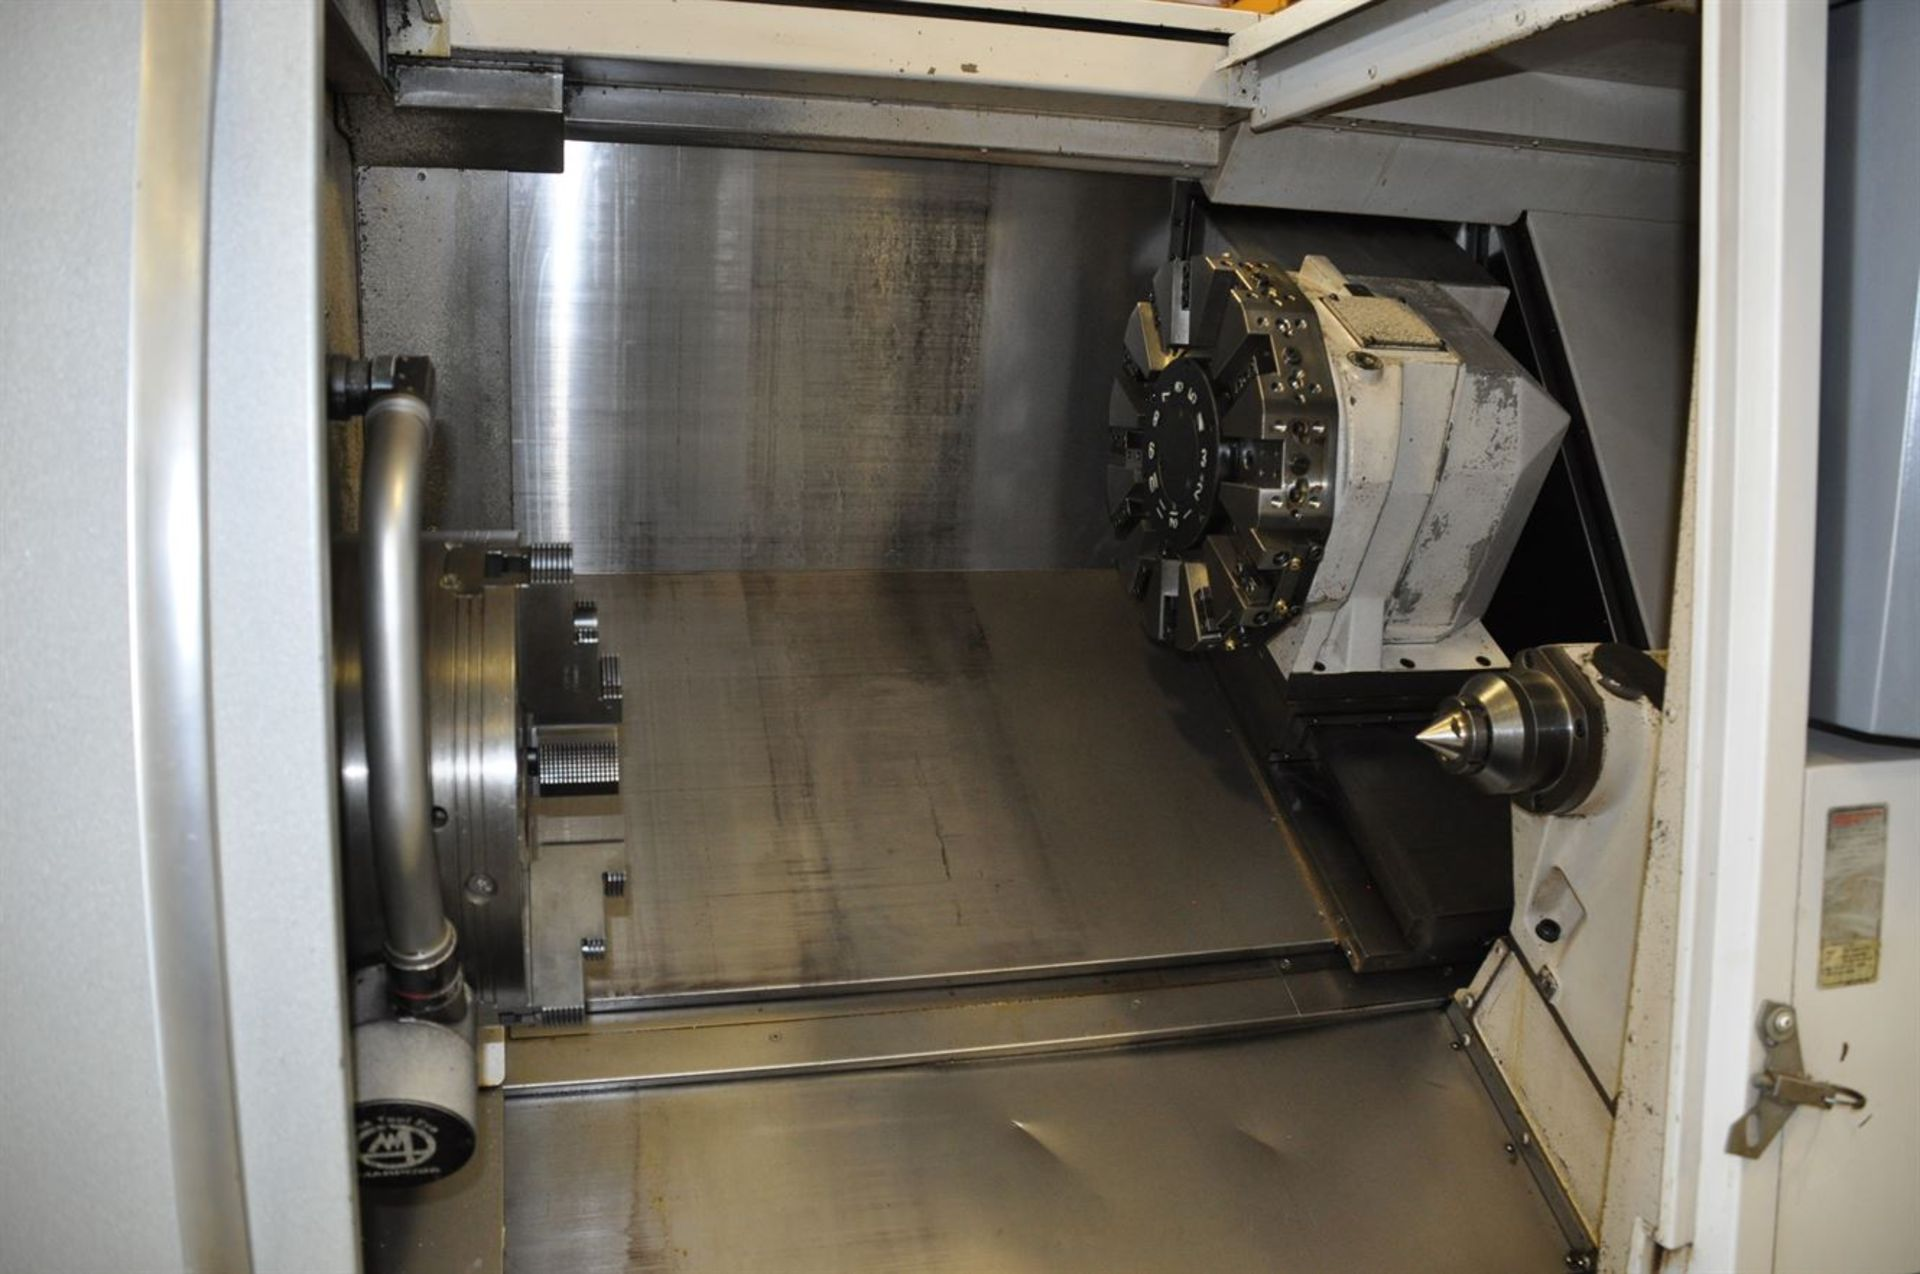 "2012 OKUMA SPACE TURN LB4000 EX Turning Center, s/n 163014, w/ OSP-P200LA Control, 3.5"" Bore, SCHUNK - Image 2 of 8"